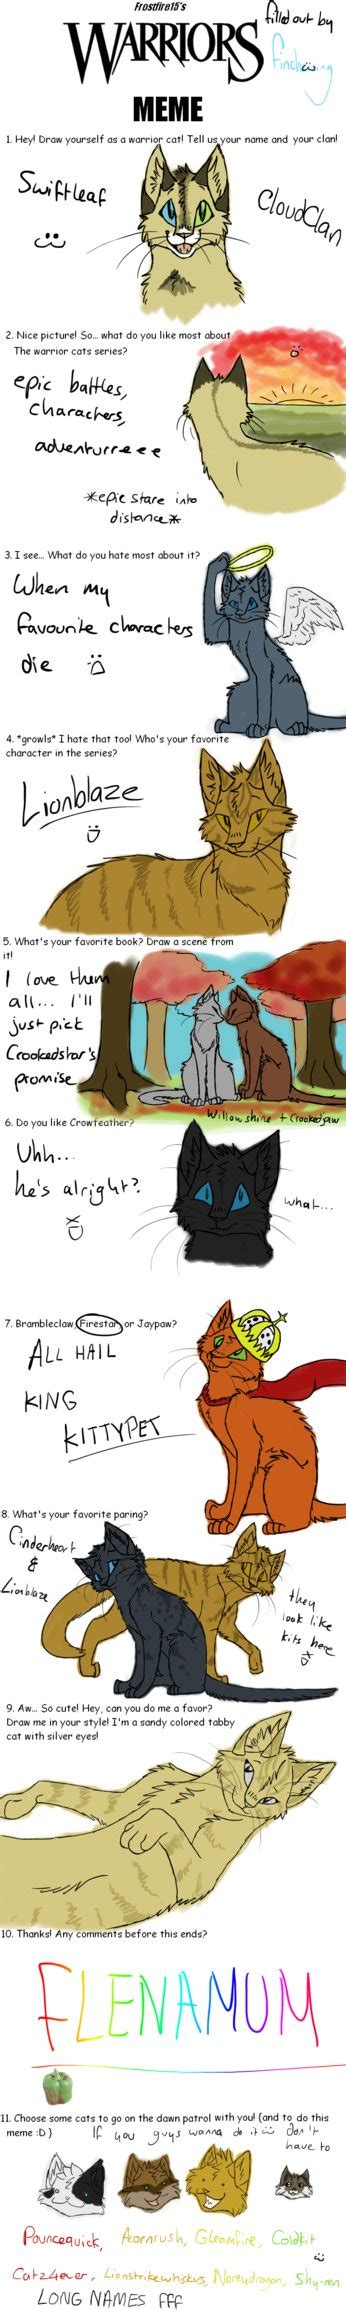 Warrior Cats Meme - warrior cats meme 6 12 11 by finchwing on deviantart